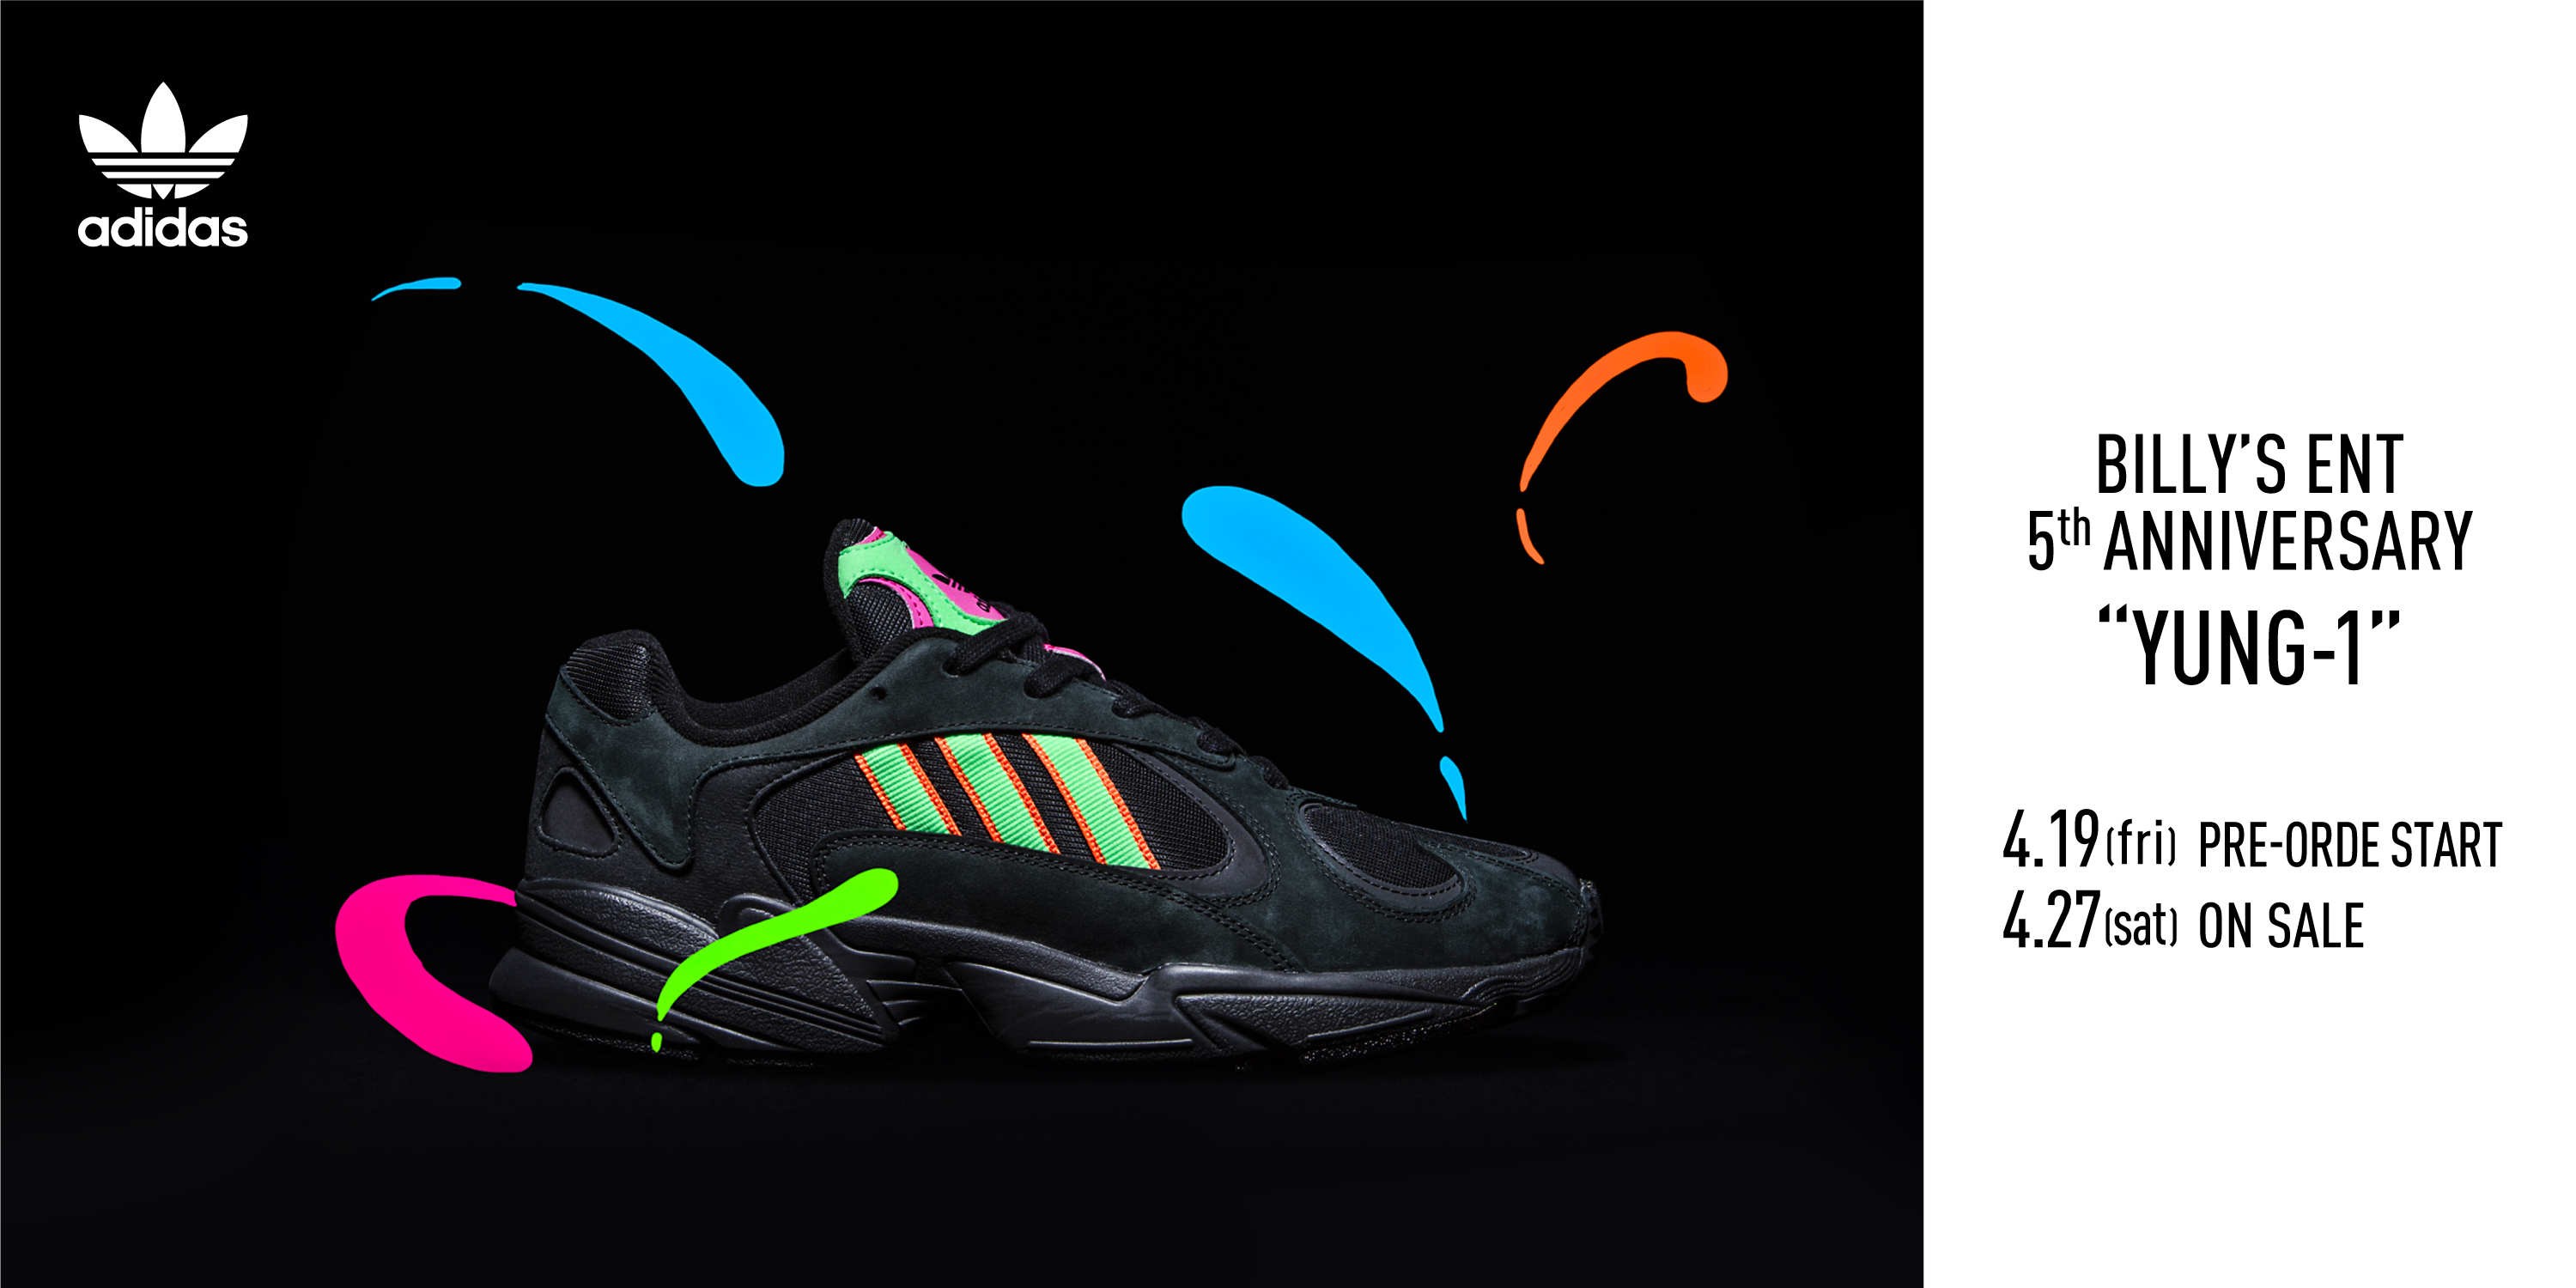 ADIDAS YUNG-1 BILLY'S